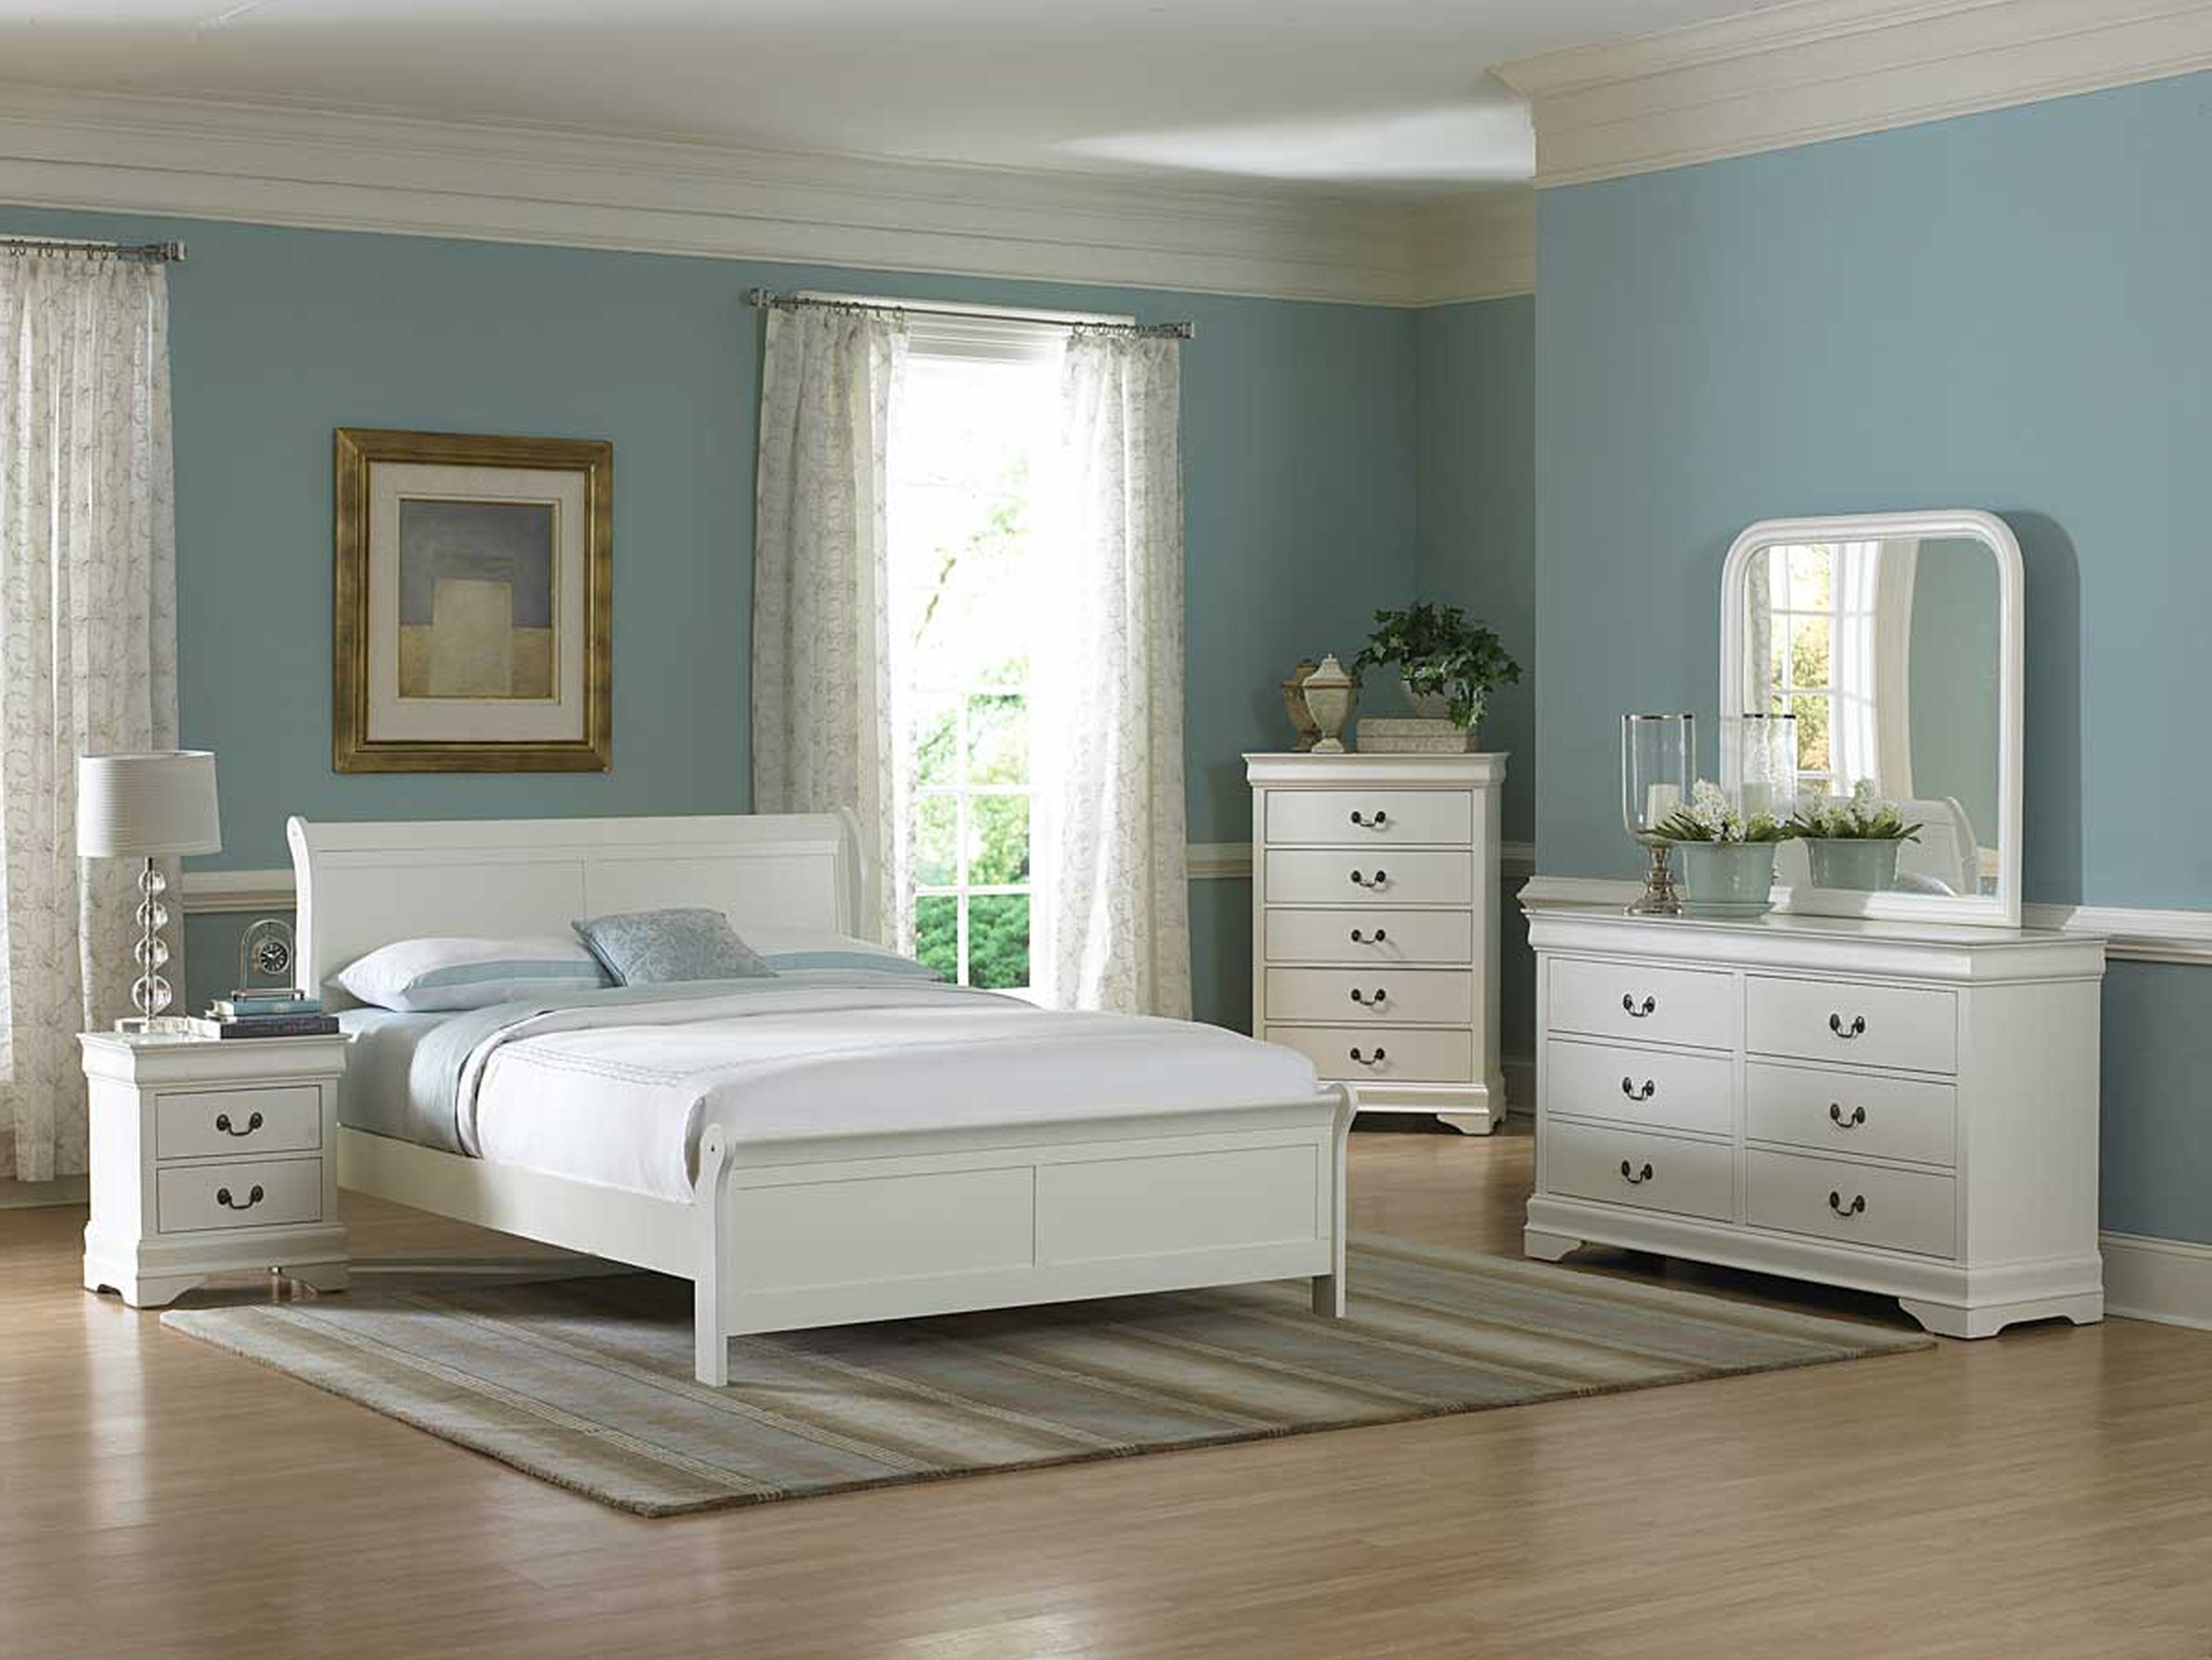 Master bedroom white furniture white bedroom pinterest white